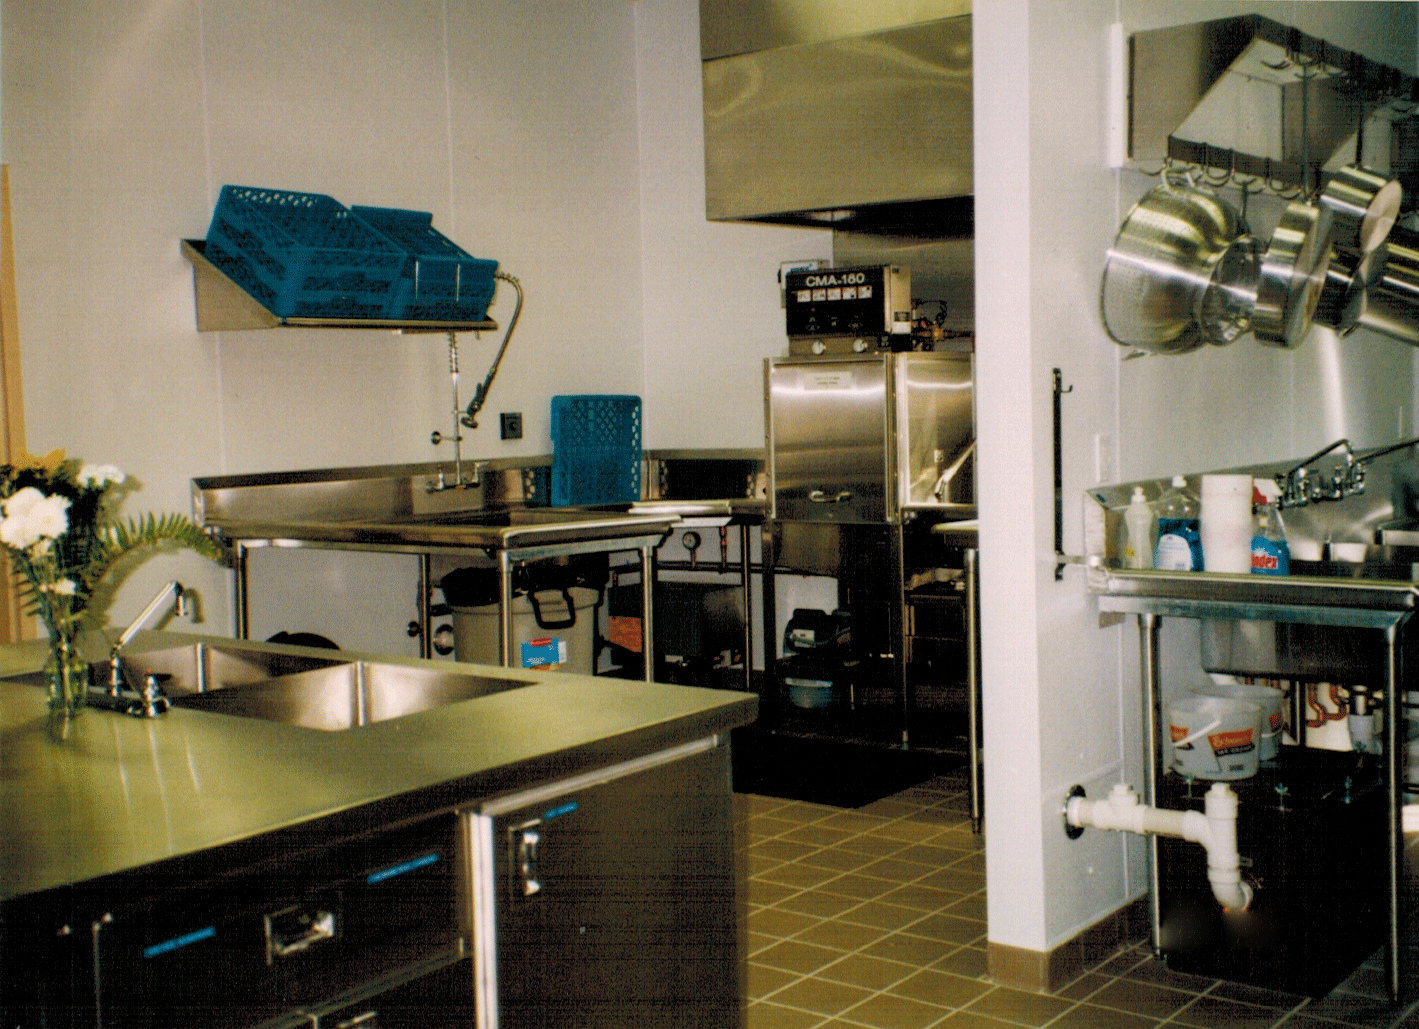 https://0201.nccdn.net/4_2/000/000/058/442/kitchen06.png